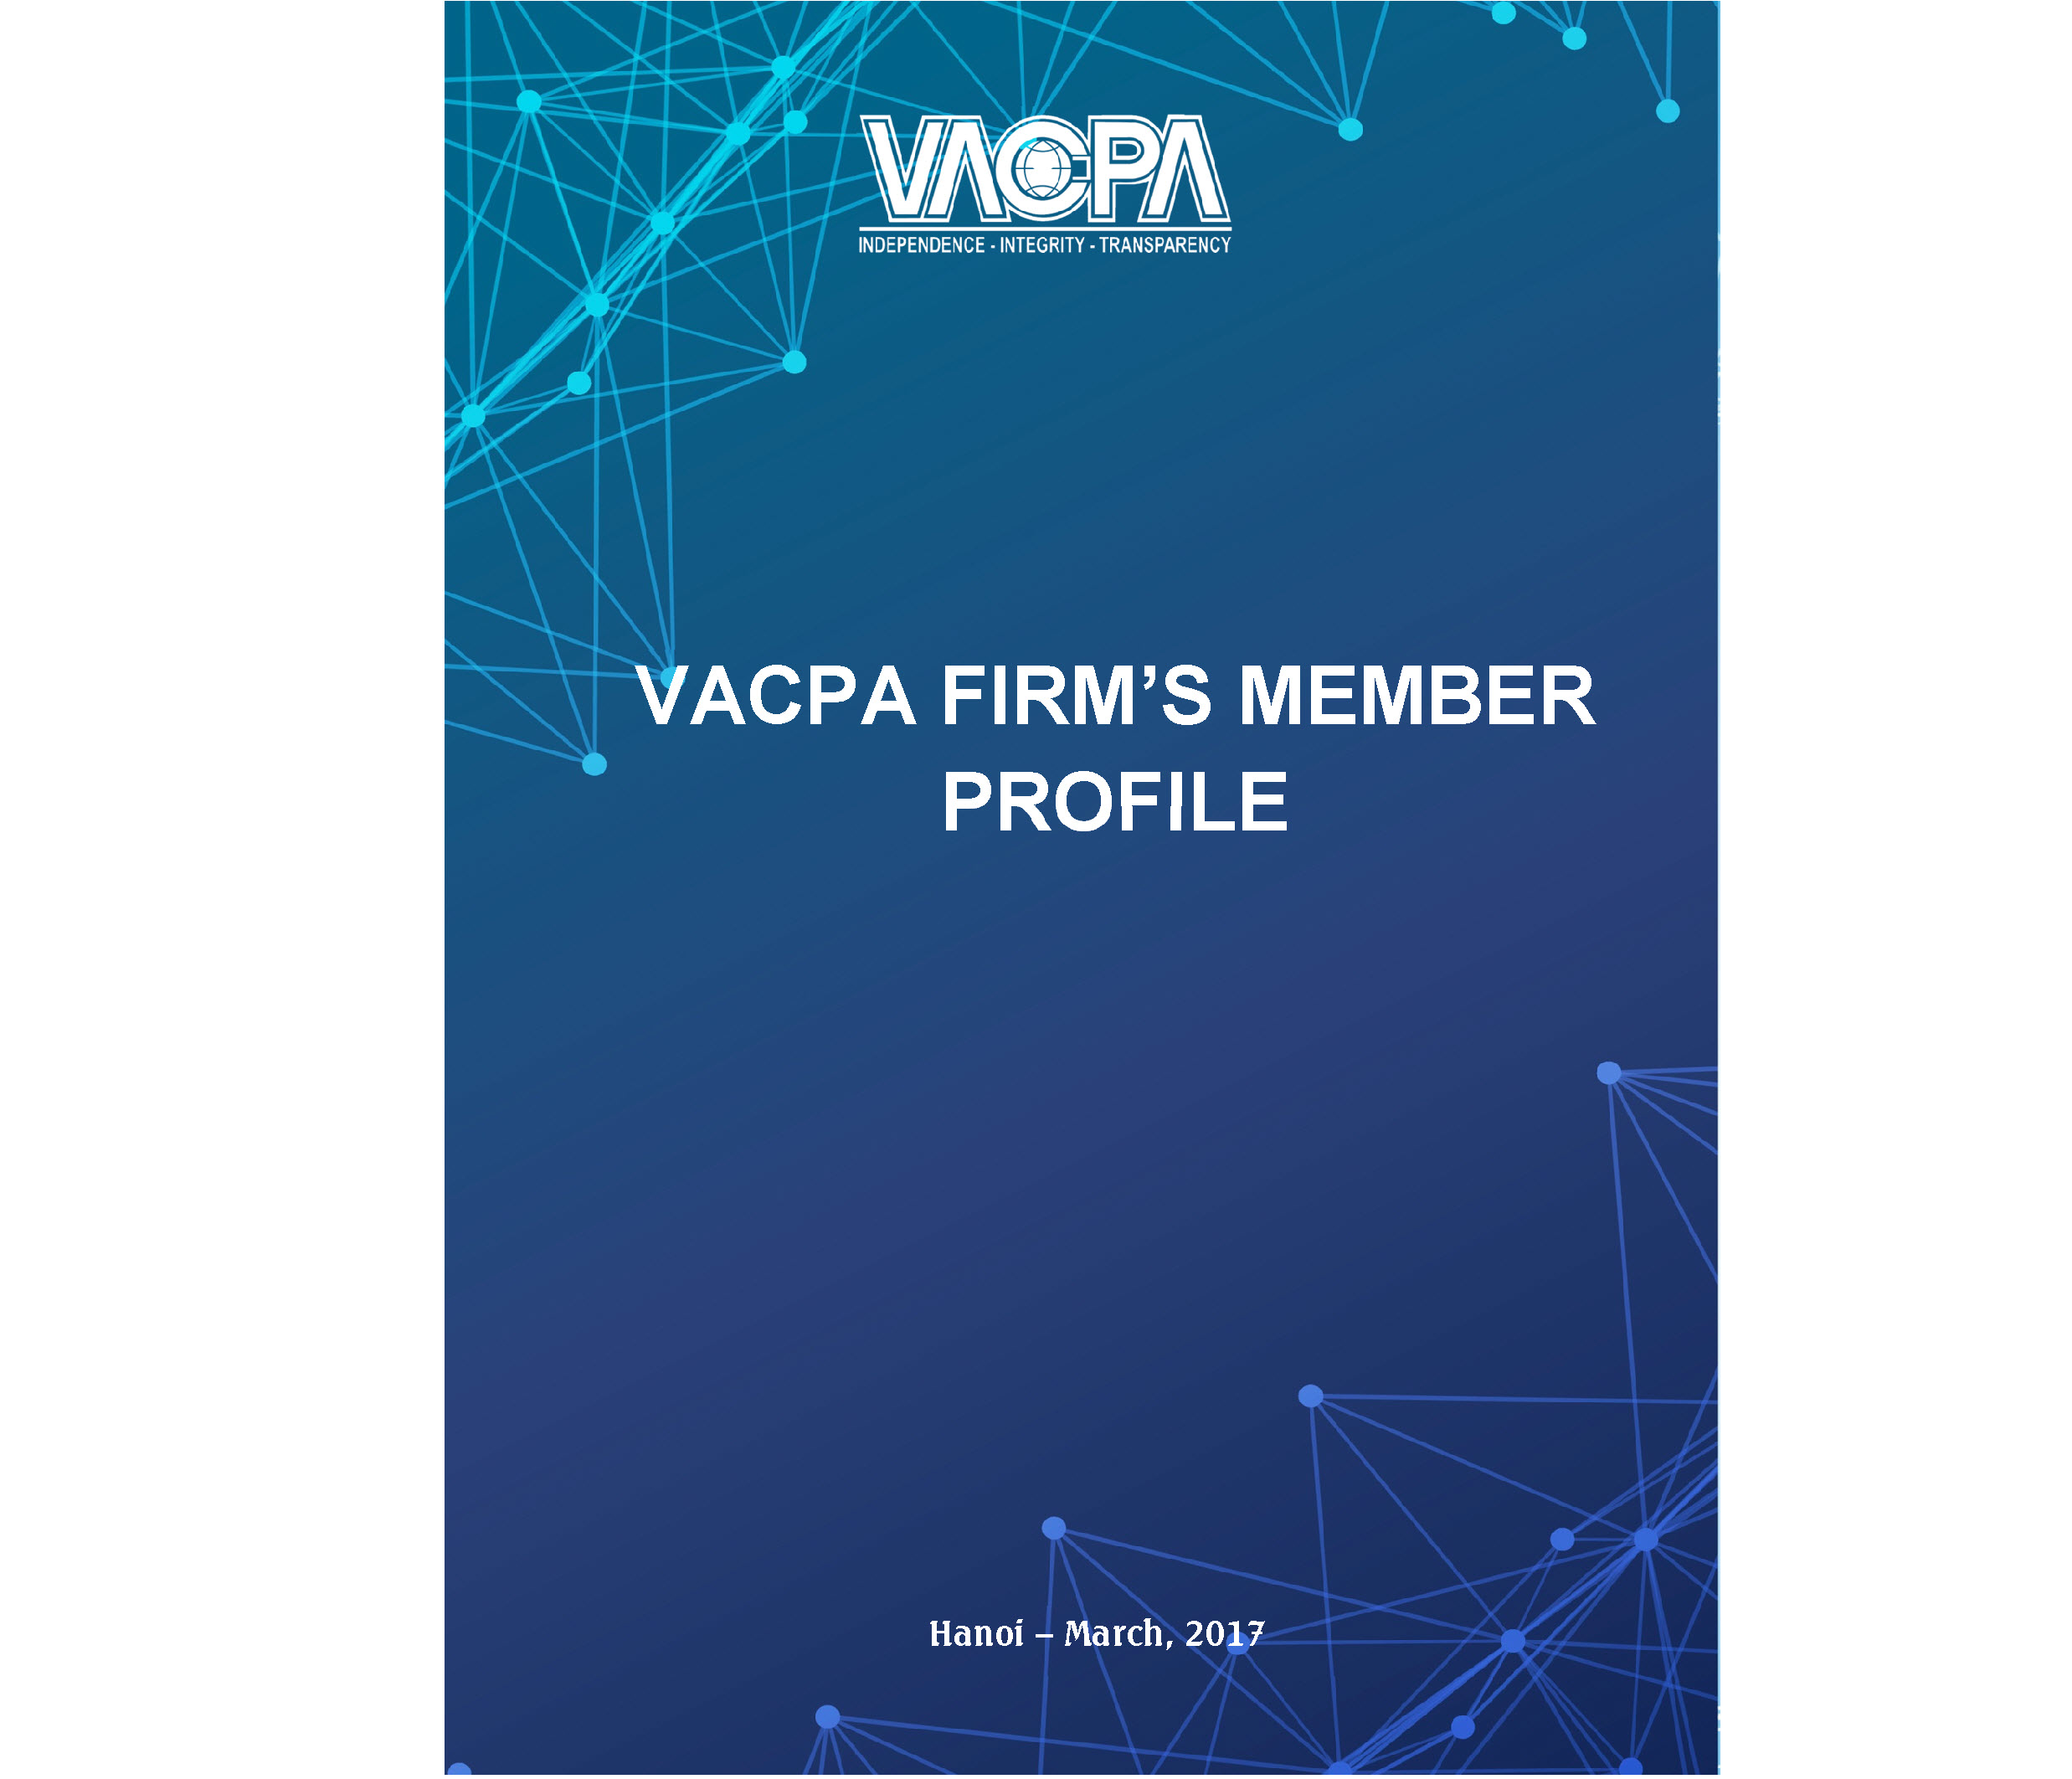 trang tin điện tử hiệp hội kiểm toán viên hành nghề việt nam vietnam association of certified public accountans vacpa is a independent professional organization of certified public accountans and audit firms in